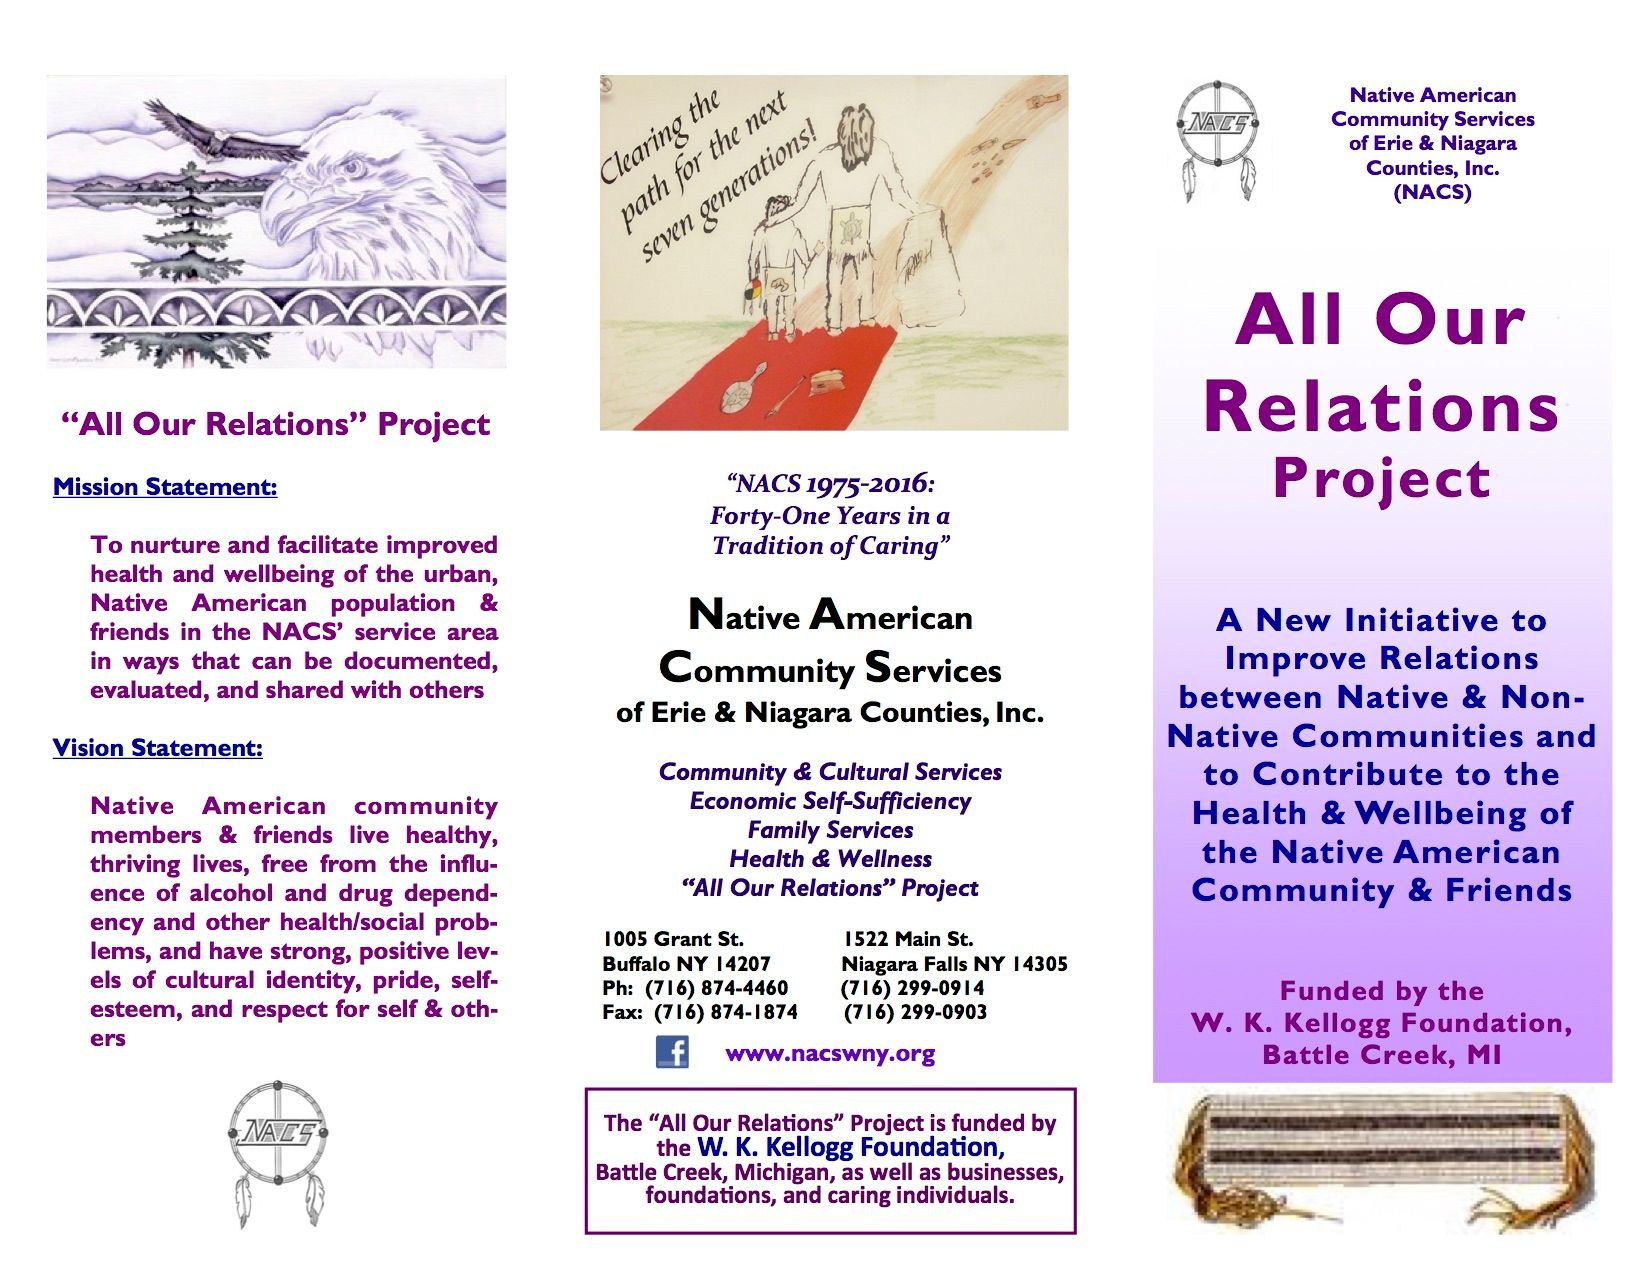 All Our Relations Project of Native American Community Services of Erie and Niagara Counties